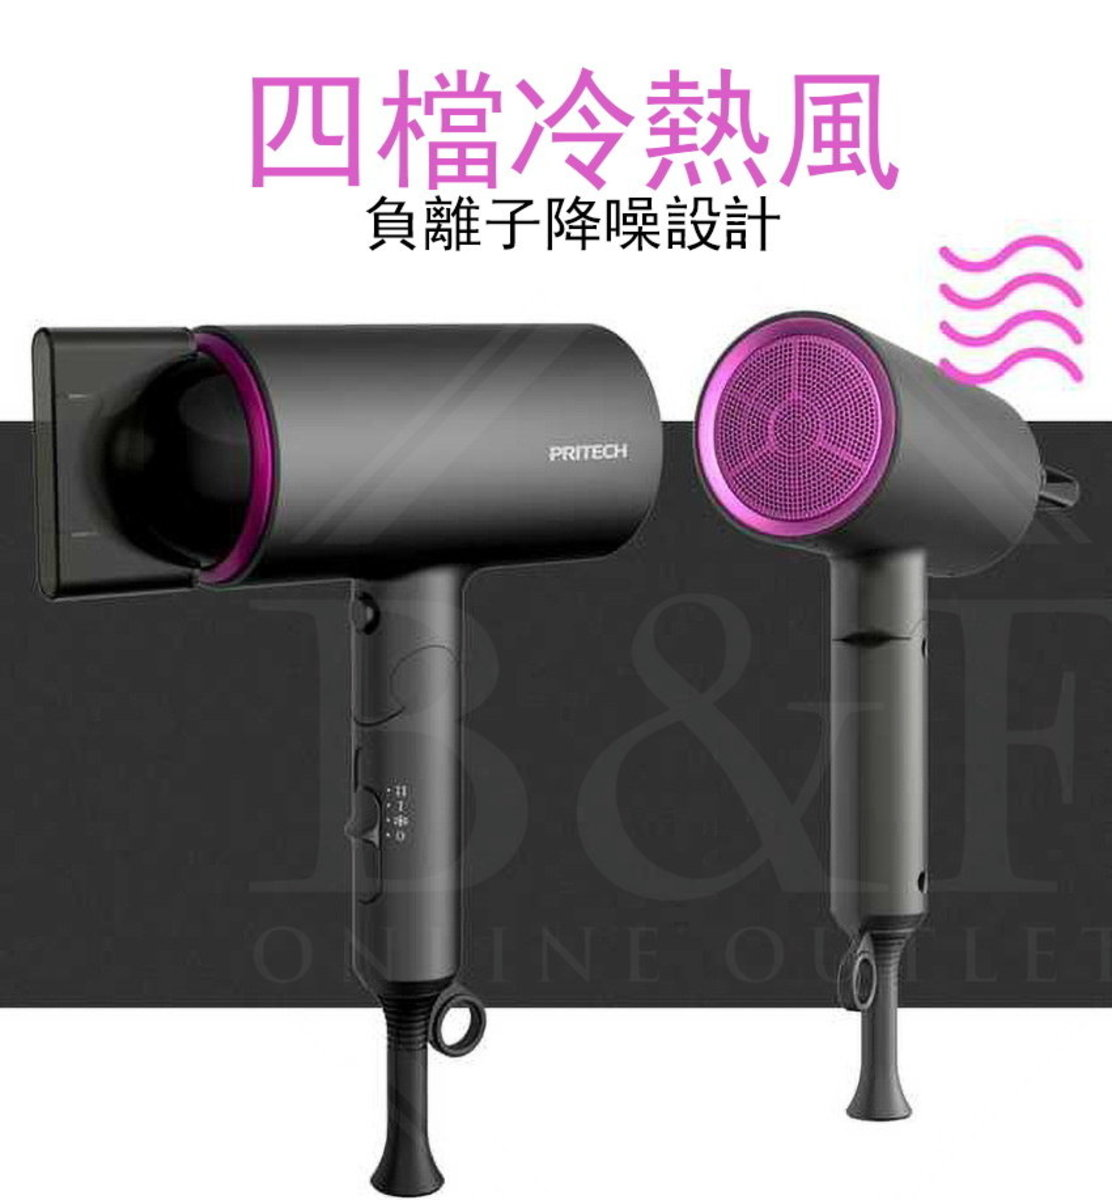 negative ion hair dryer 4 power lever cool and hot air